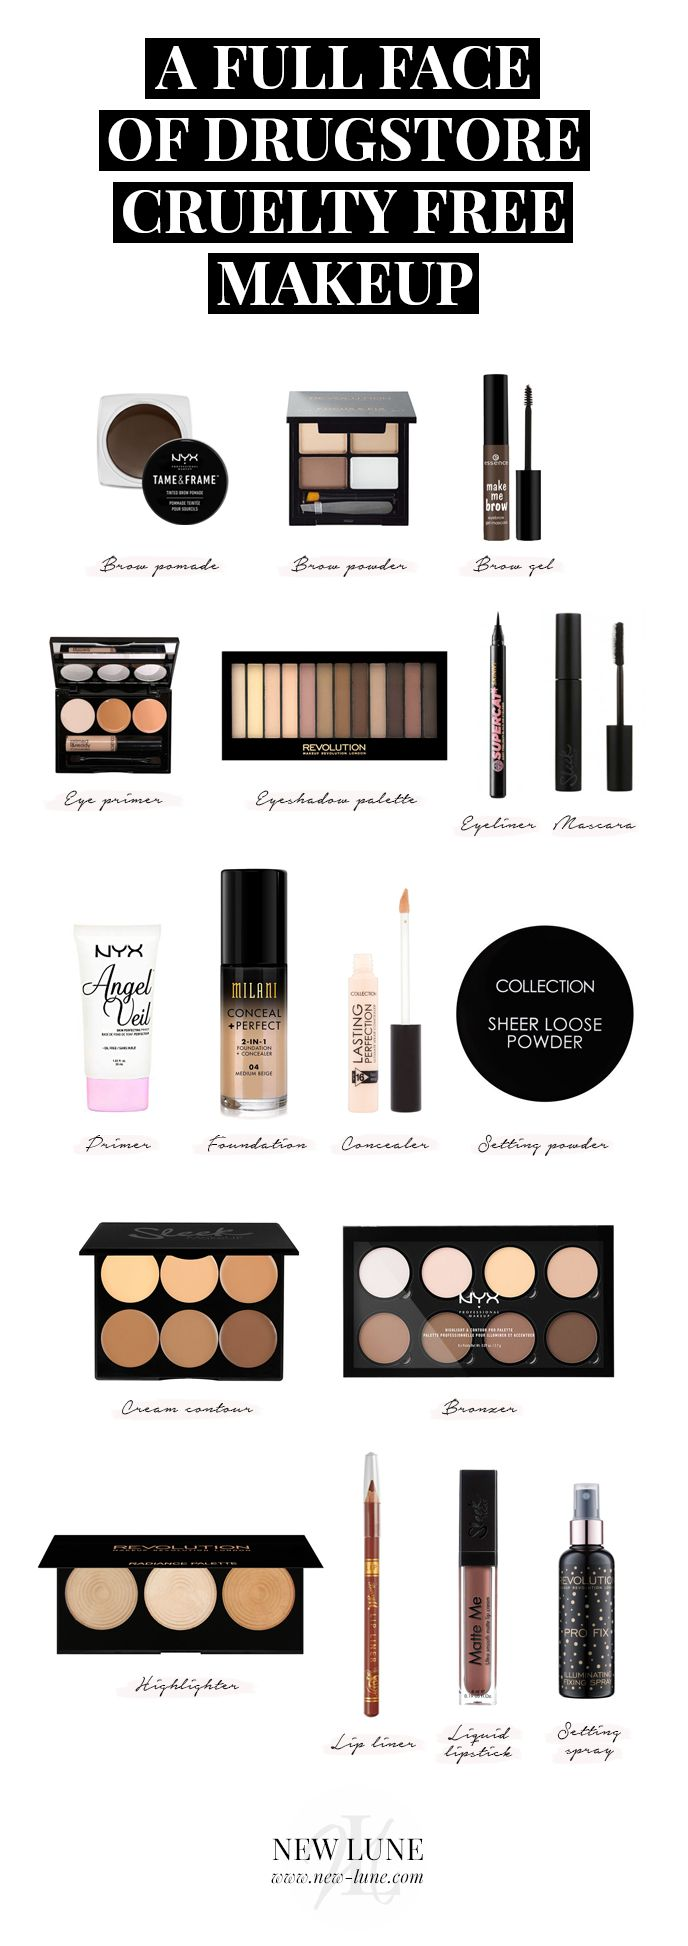 A Full Face Of Drugstore Cruelty Free Makeup Cruelty